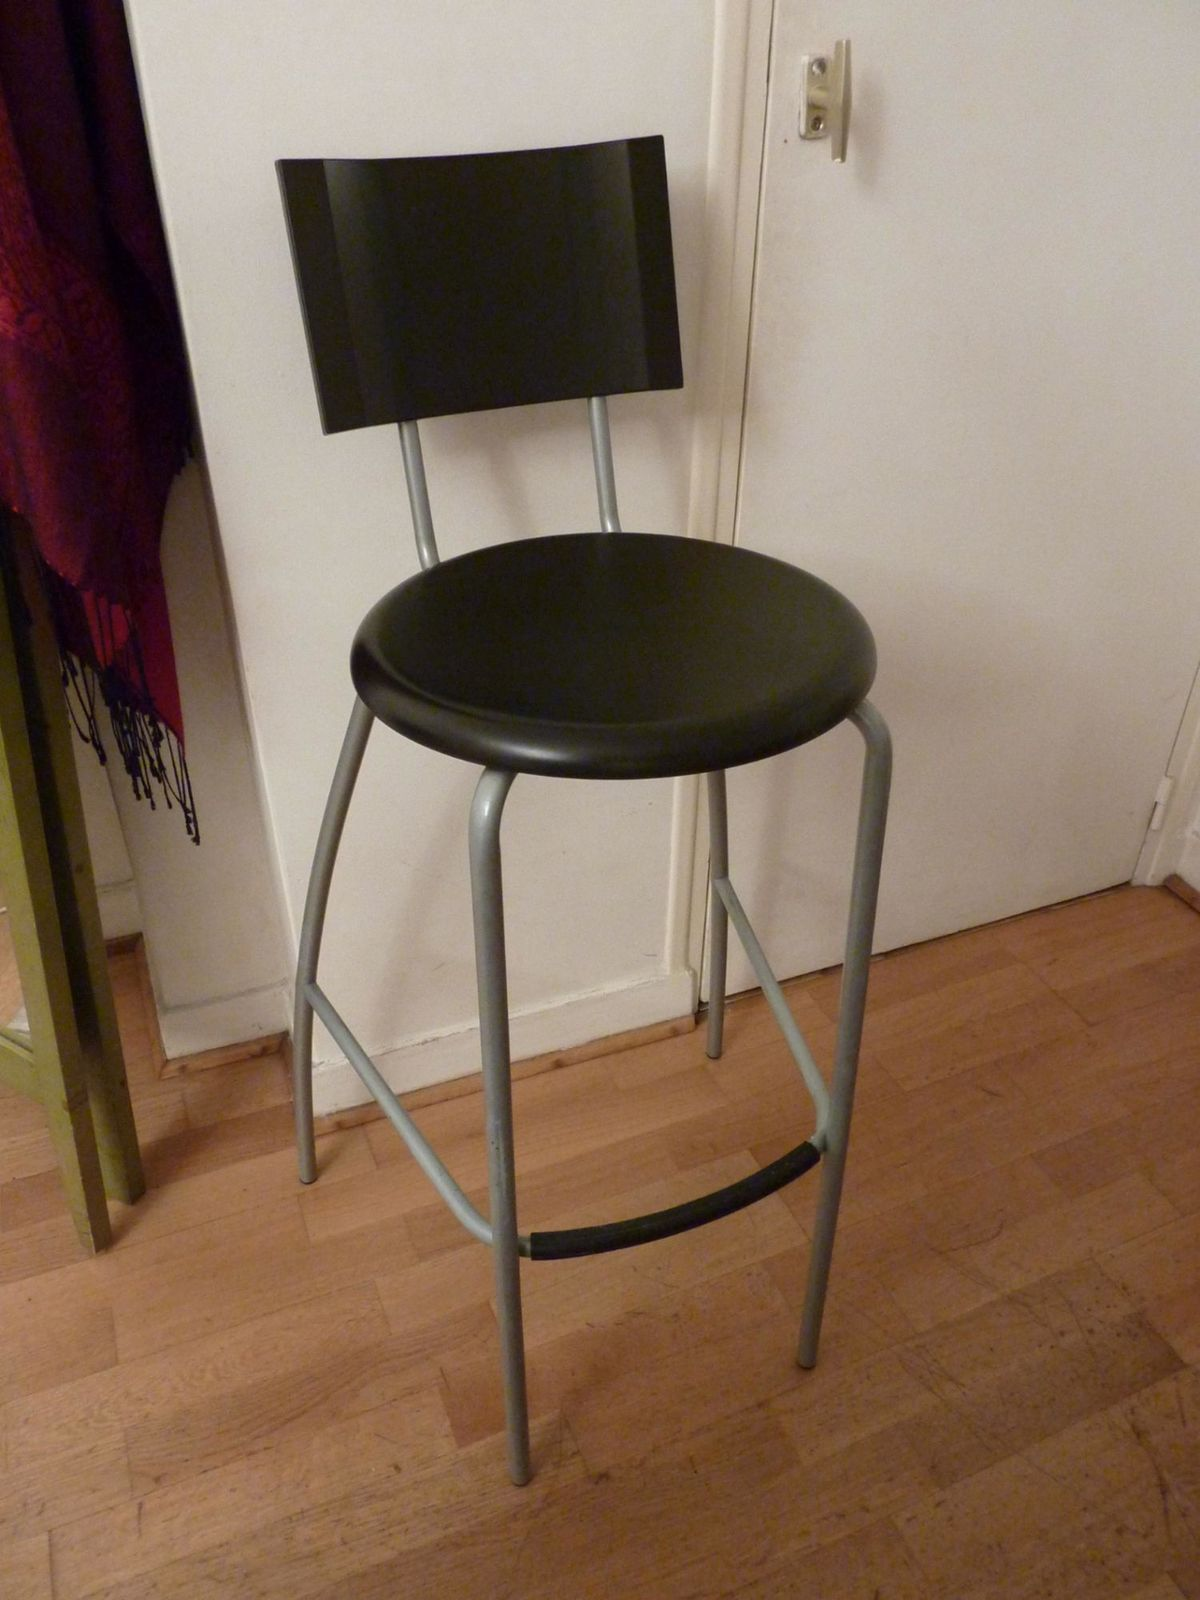 ikea tabourets de bar tabouret de bar ikea 2 henriksdal tabouret de bar dossier 63 cm ikea. Black Bedroom Furniture Sets. Home Design Ideas